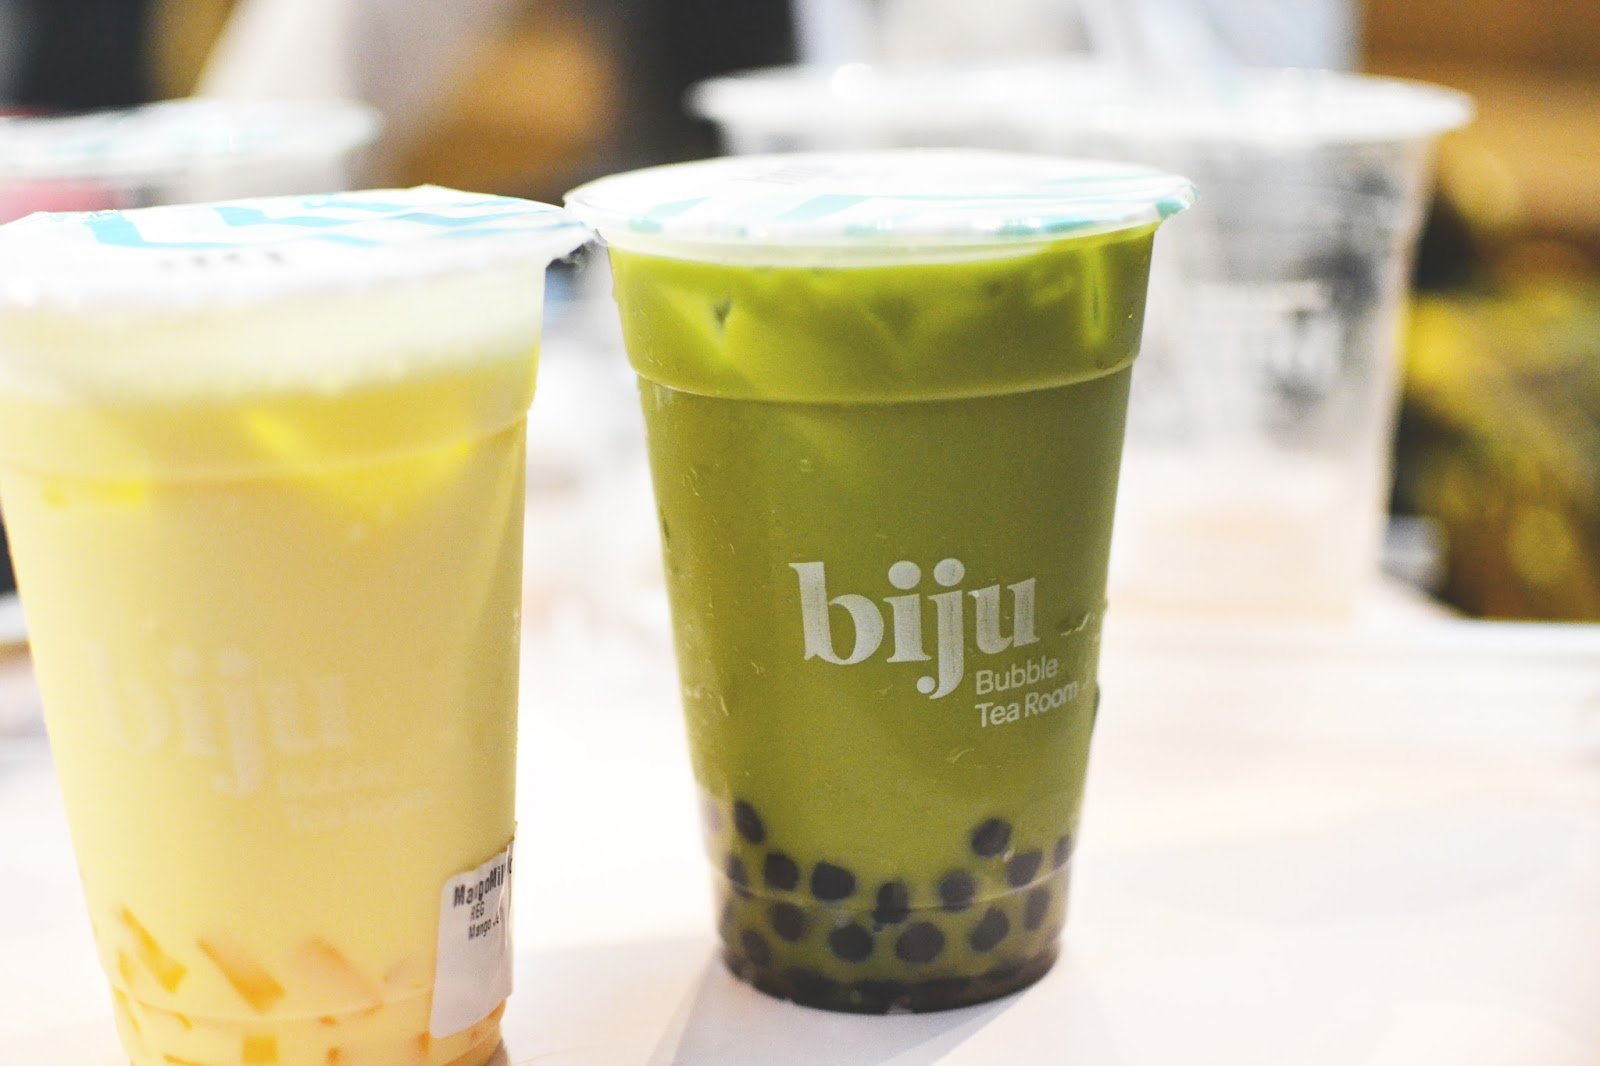 biju bubble tea, london bubble tea